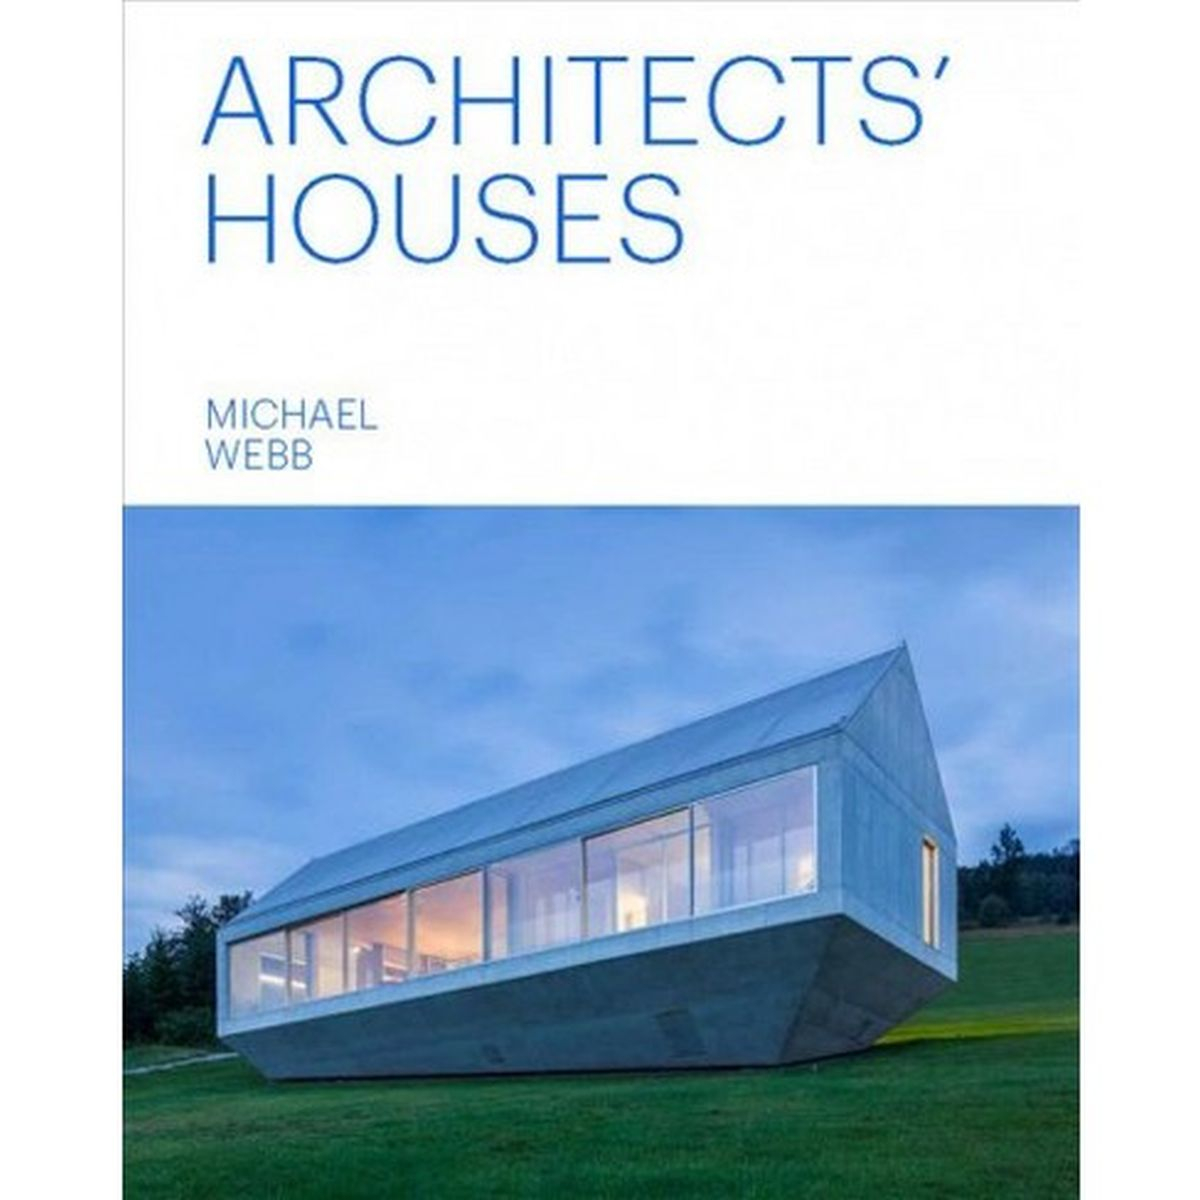 Architects Houses Hardcover, Michael Webb / Fot. Materiały prasowe